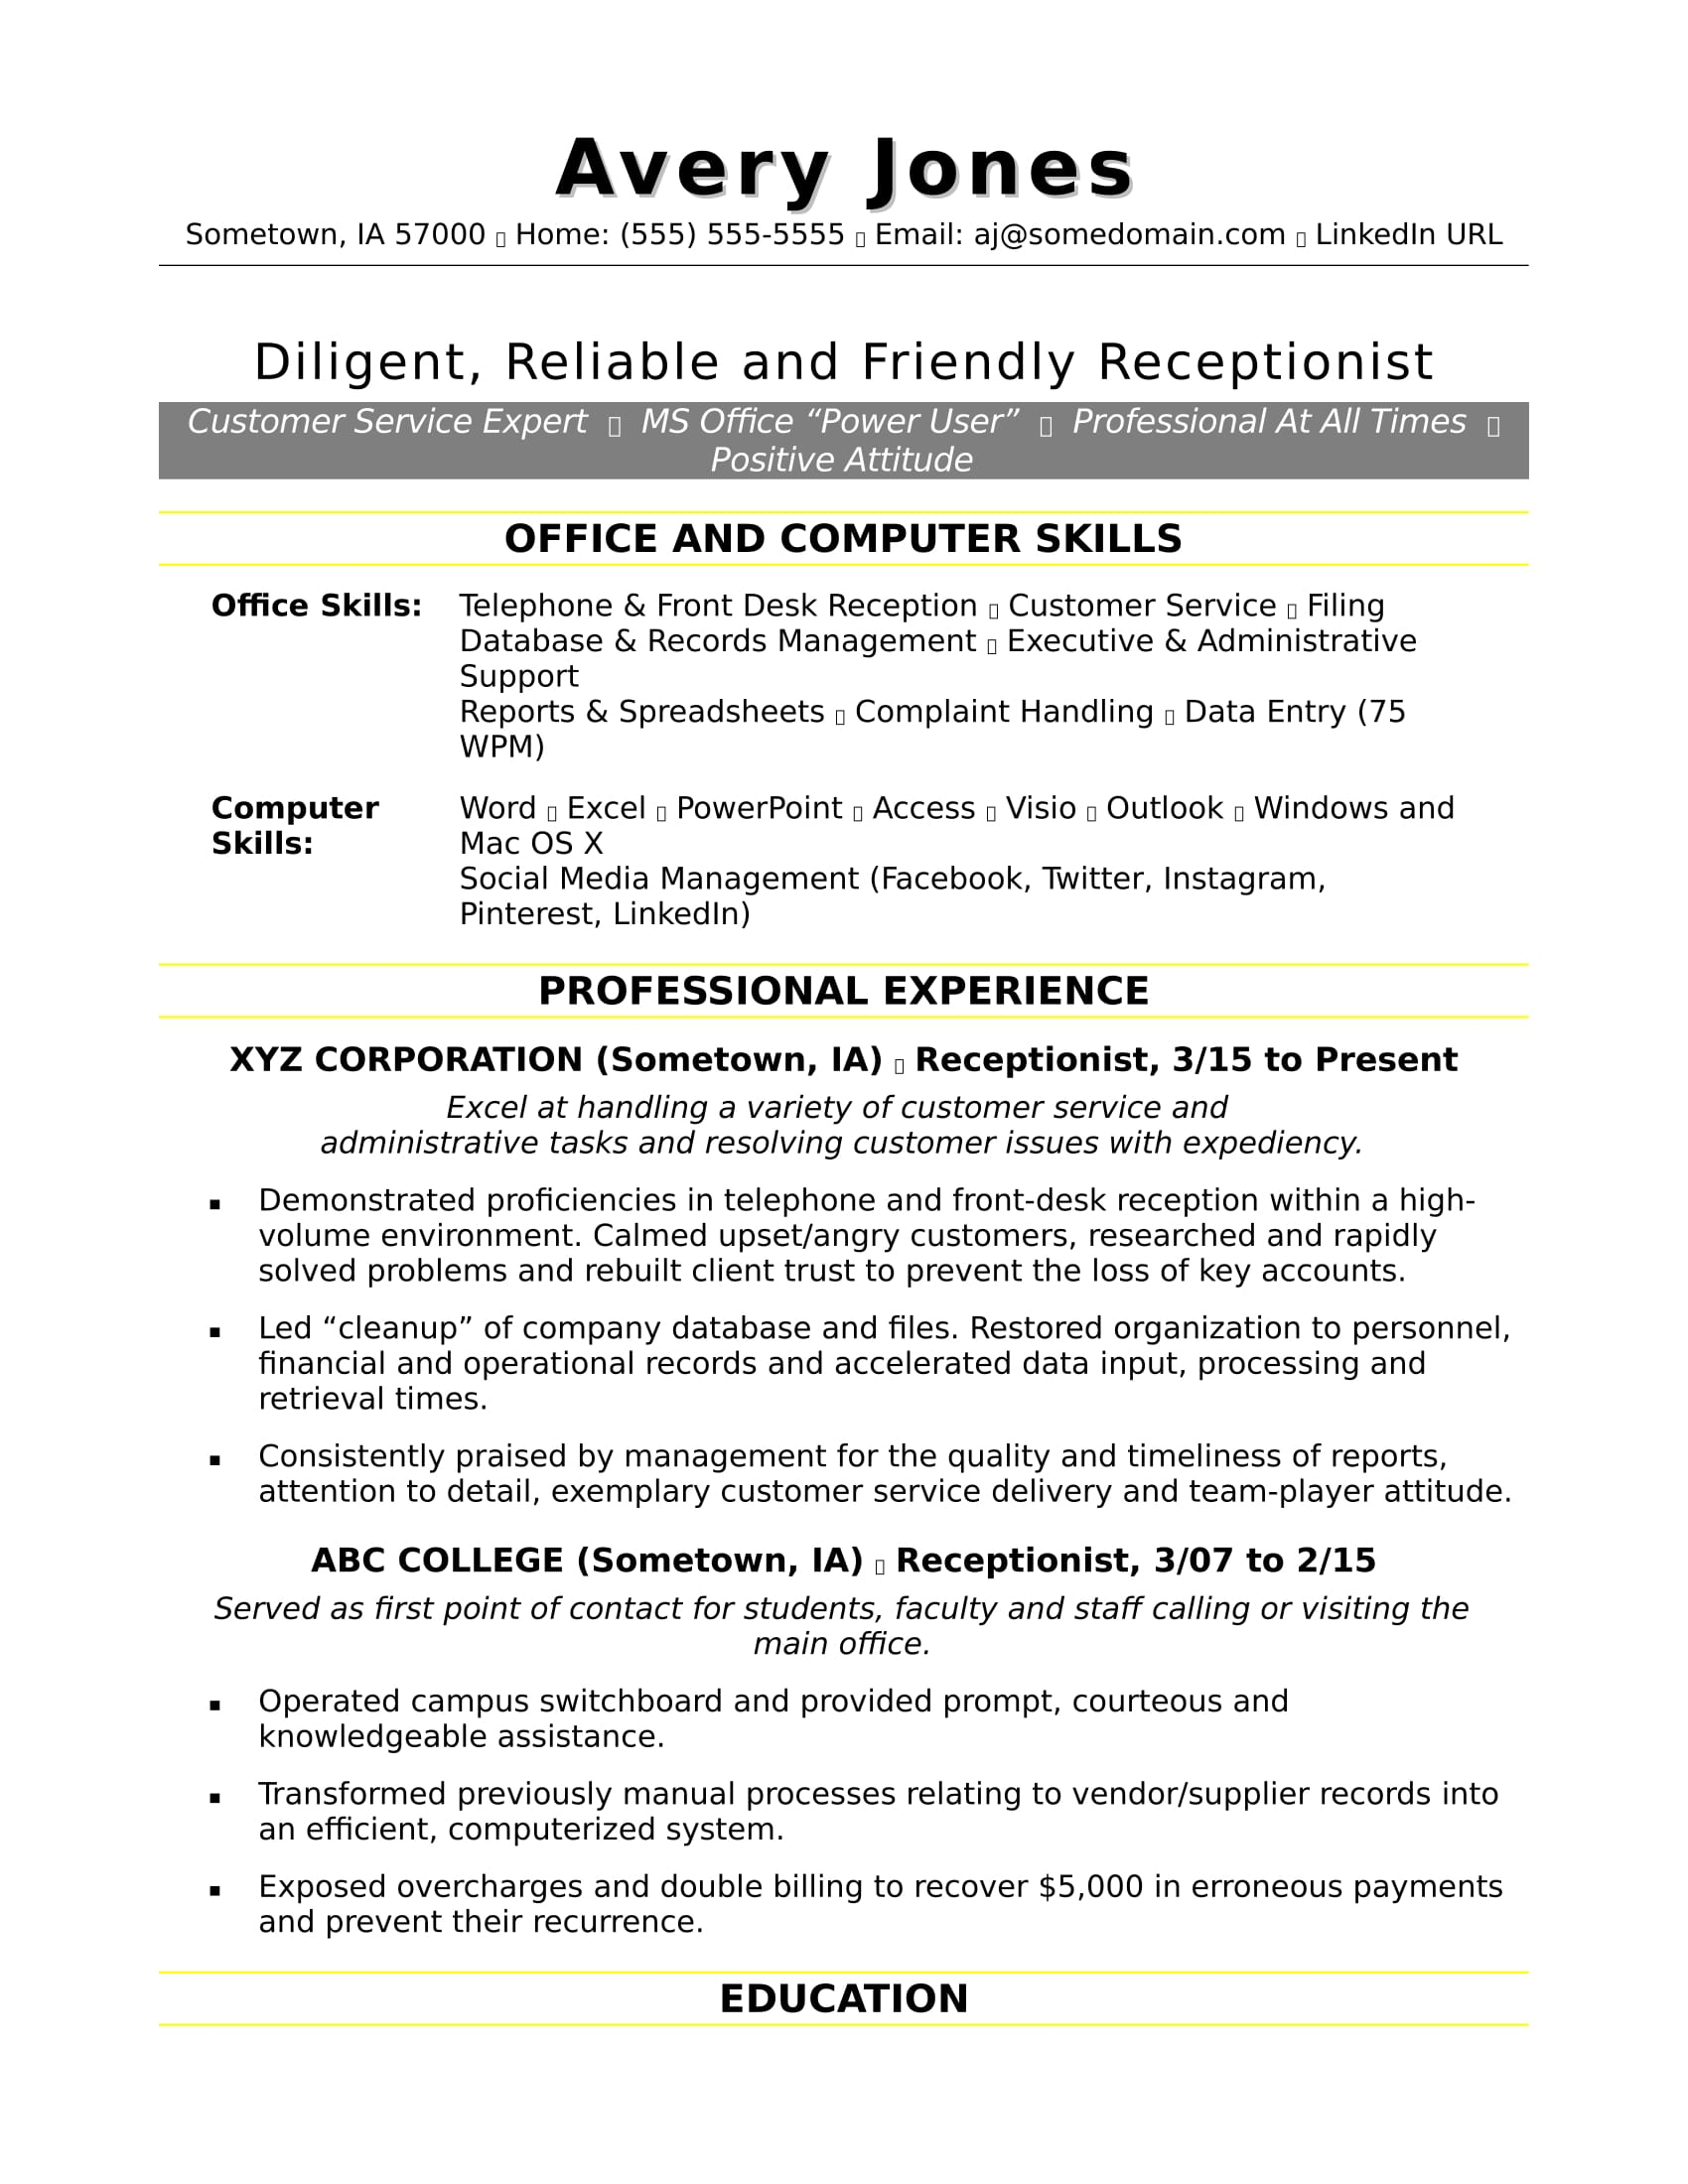 Receptionist resume sample monster sample resume for a receptionist madrichimfo Images